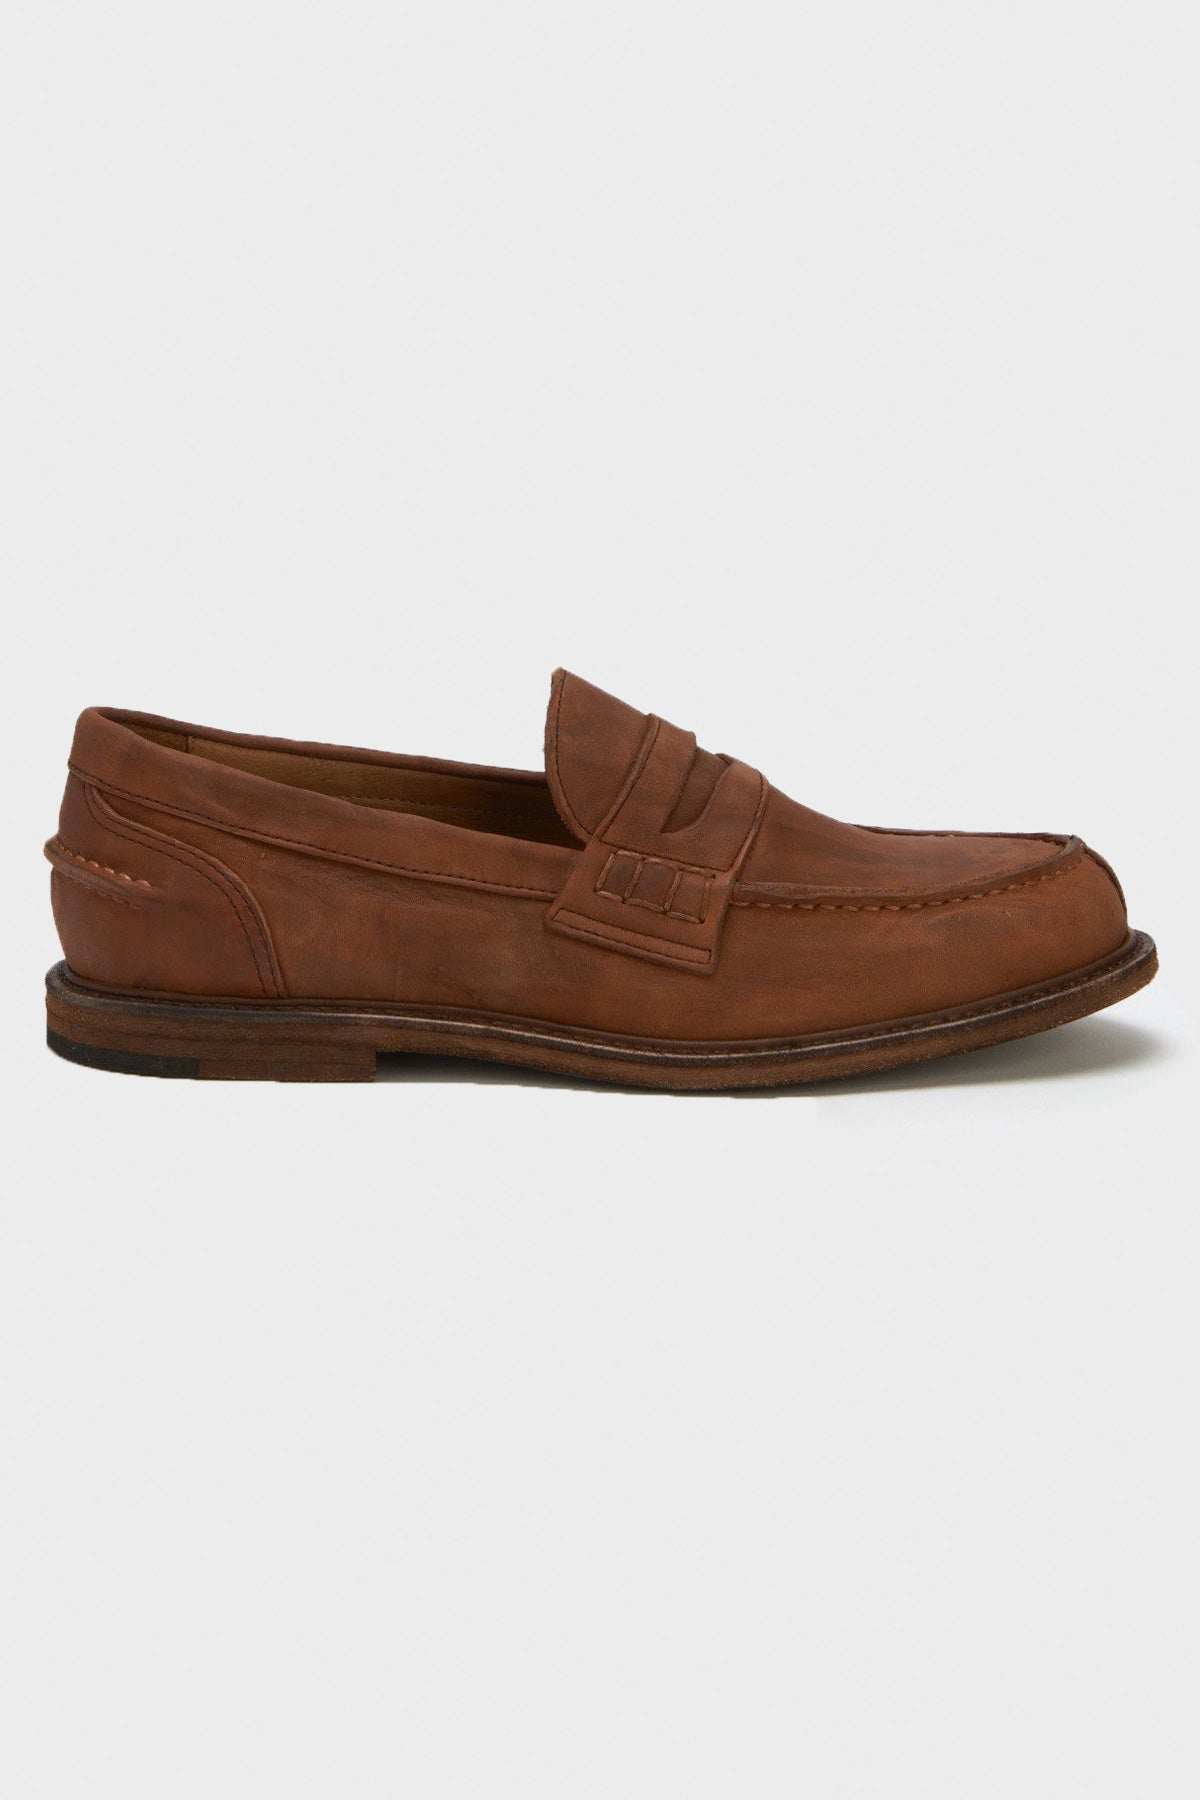 Hender Scheme - Slouchy - Dark Brown - Canoe Club